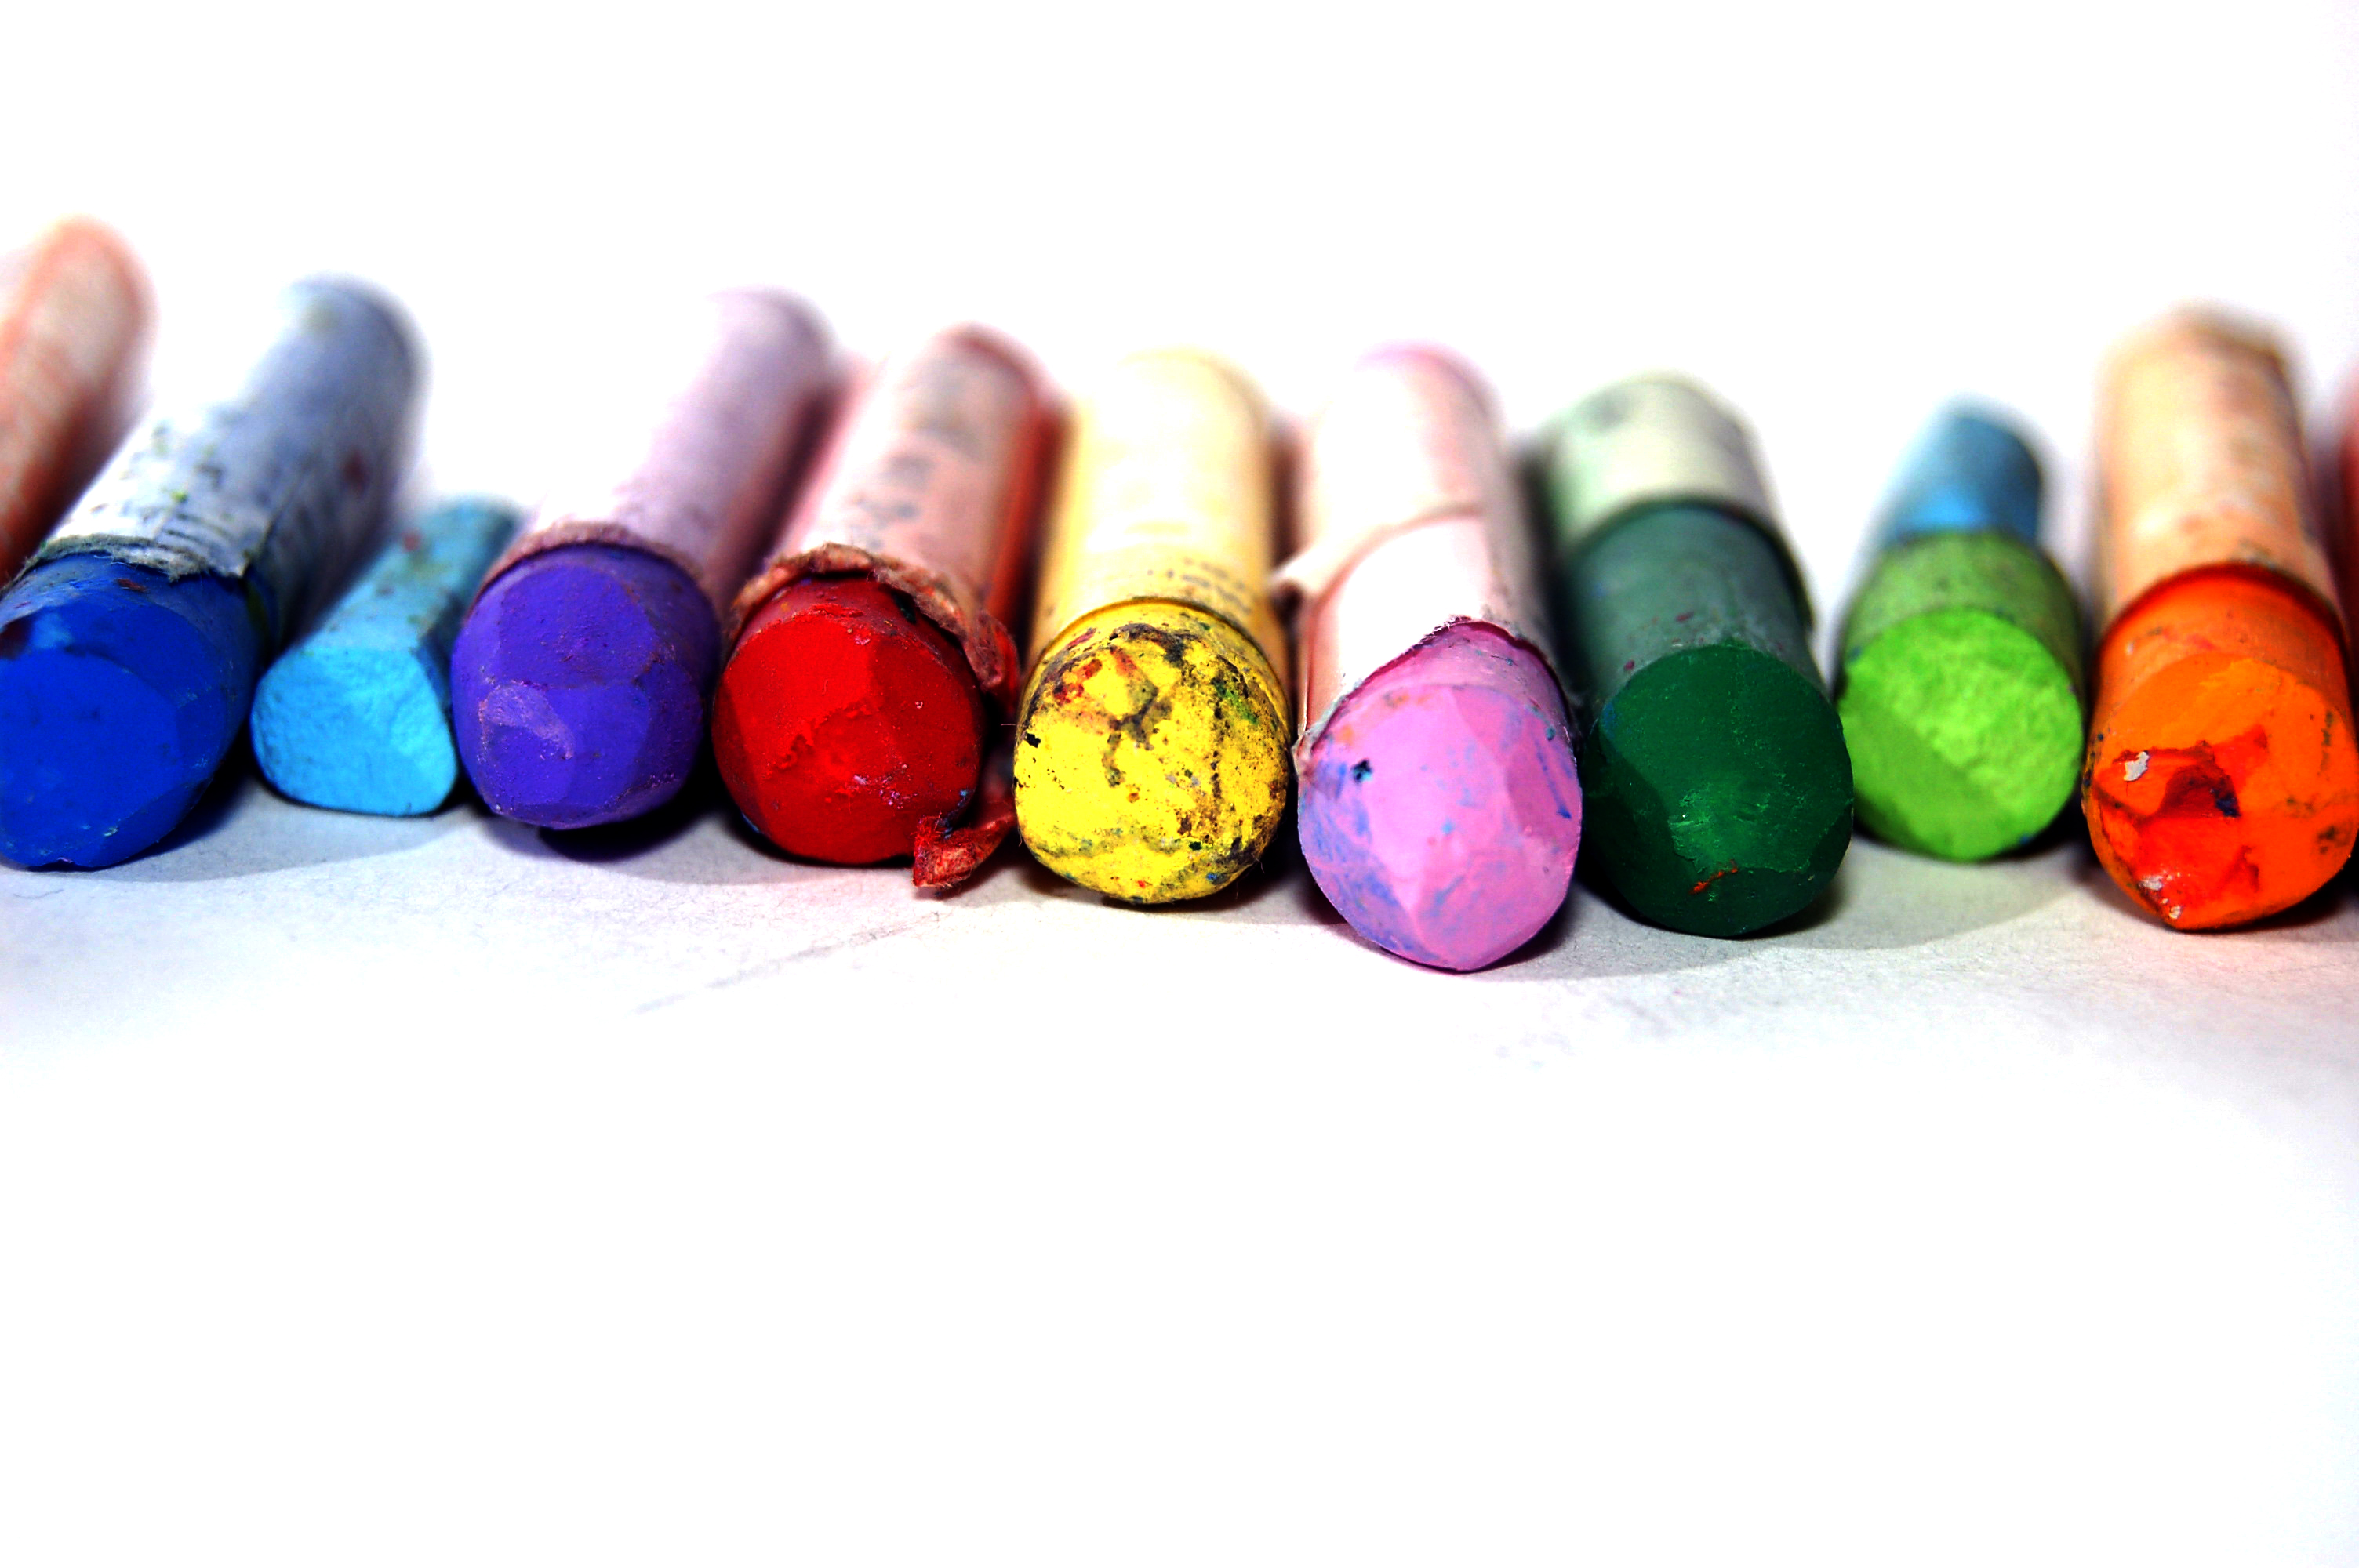 Use Those Old, Broken Crayons to Make New Ones!